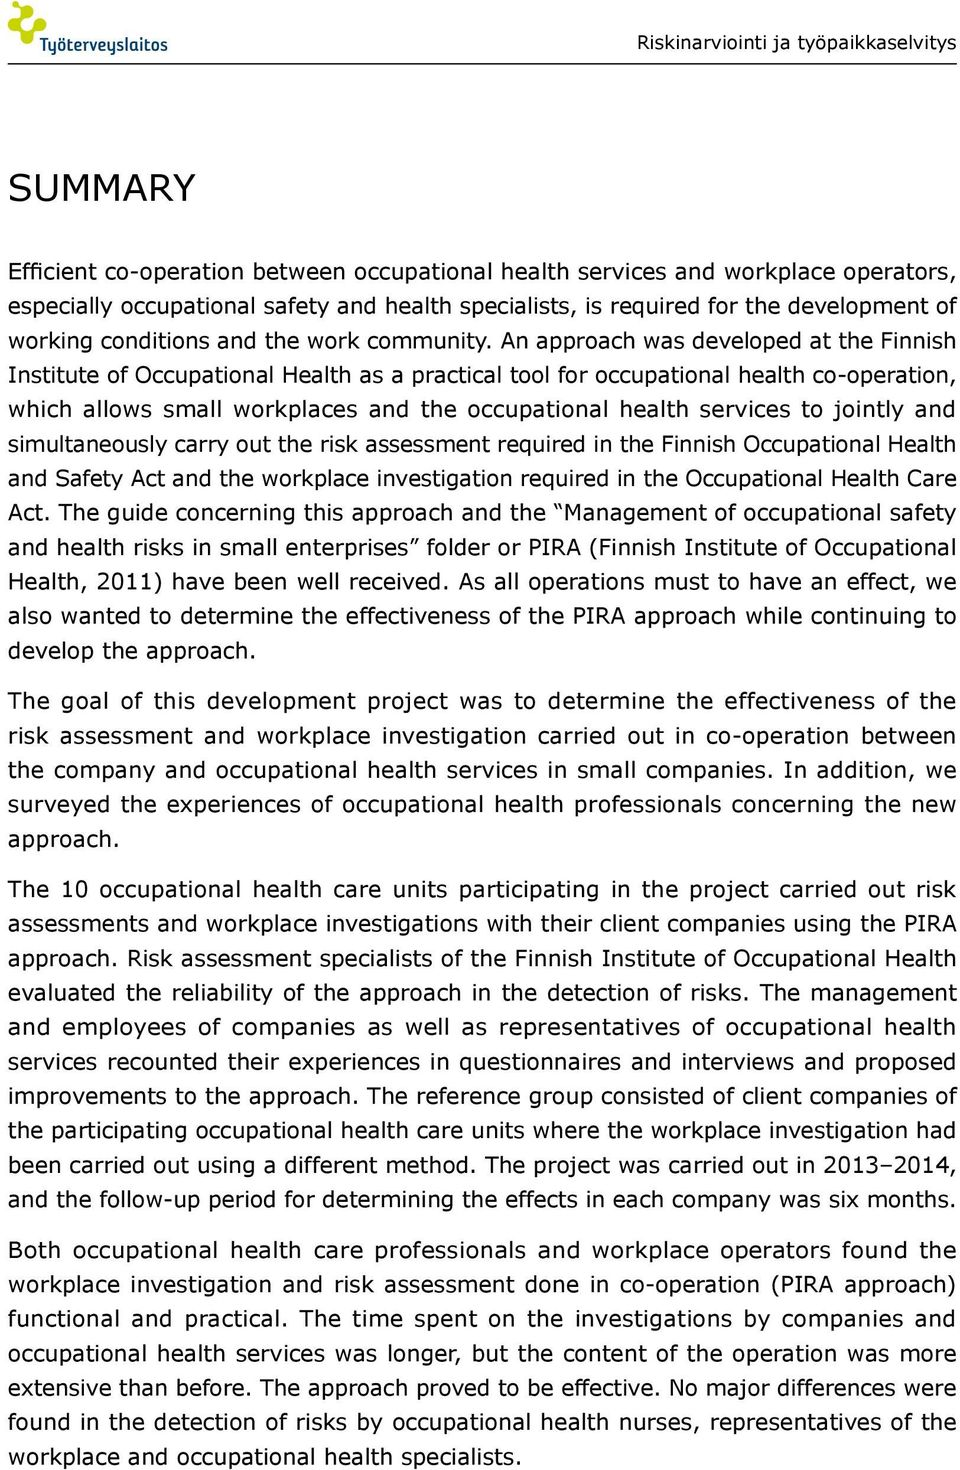 An approach was developed at the Finnish Institute of Occupational Health as a practical tool for occupational health co-operation, which allows small workplaces and the occupational health services